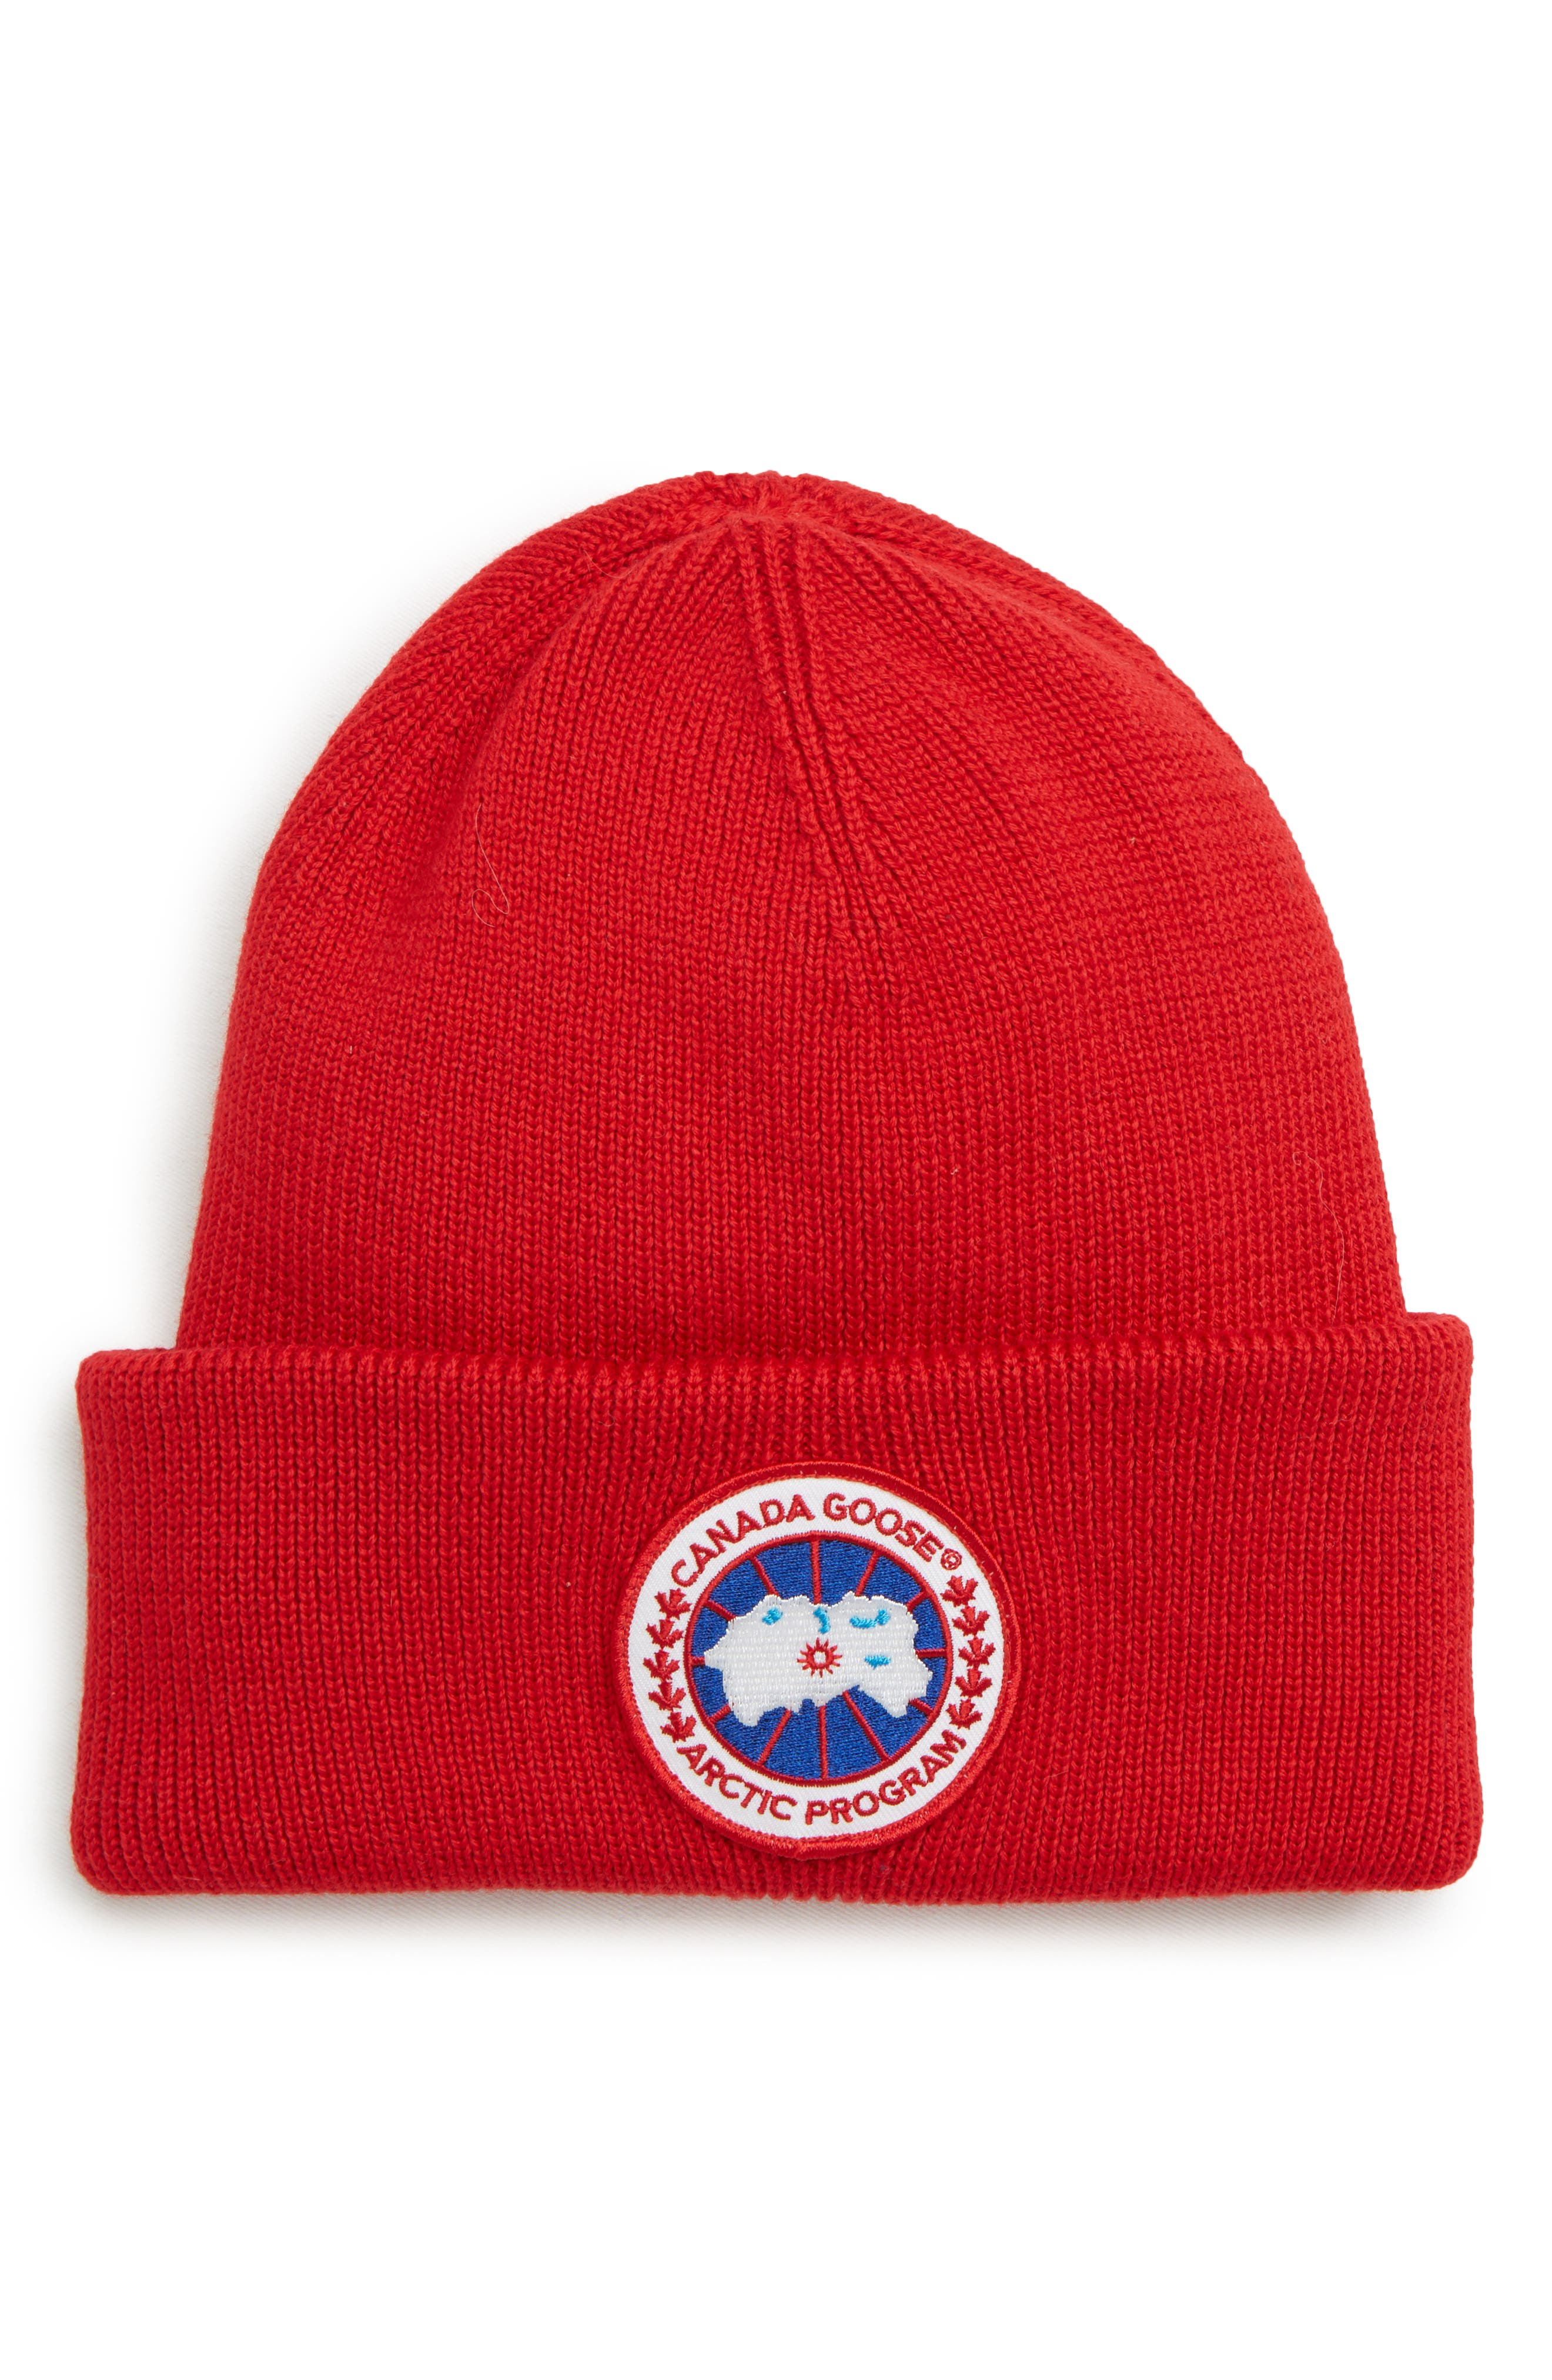 best sneakers bfea1 e3dbe wholesale new era new york mets womens chunky knit hat b605a 114b8  greece  canada goose arctic disc merino wool toque beanie 378bc 6f251